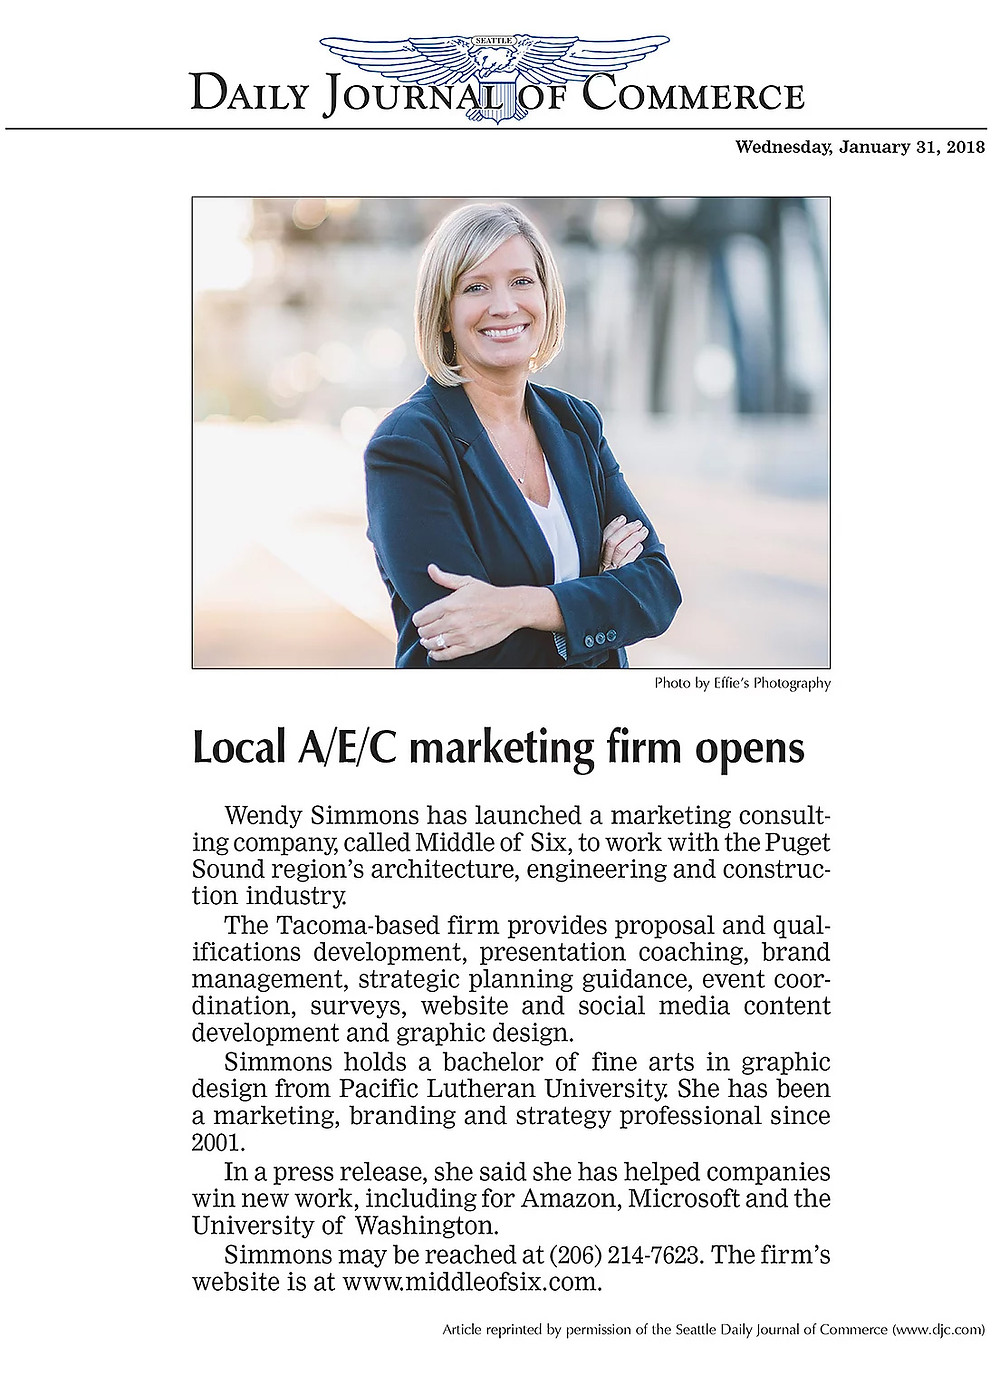 Middle of Six, Architecture, Engineering and Construction Marketing firm, launch reported by the Daily Journal of Commerce